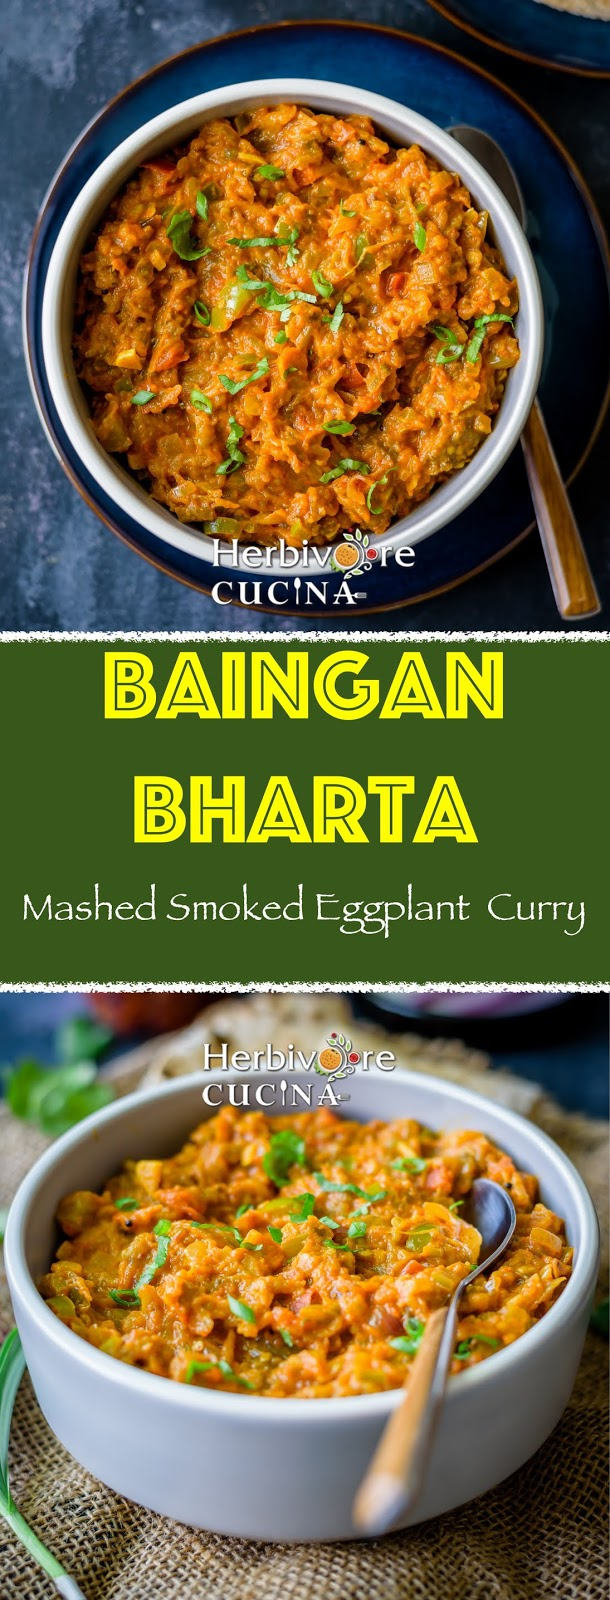 Baingan Bharta | Mashed Smoked Eggplant Curry